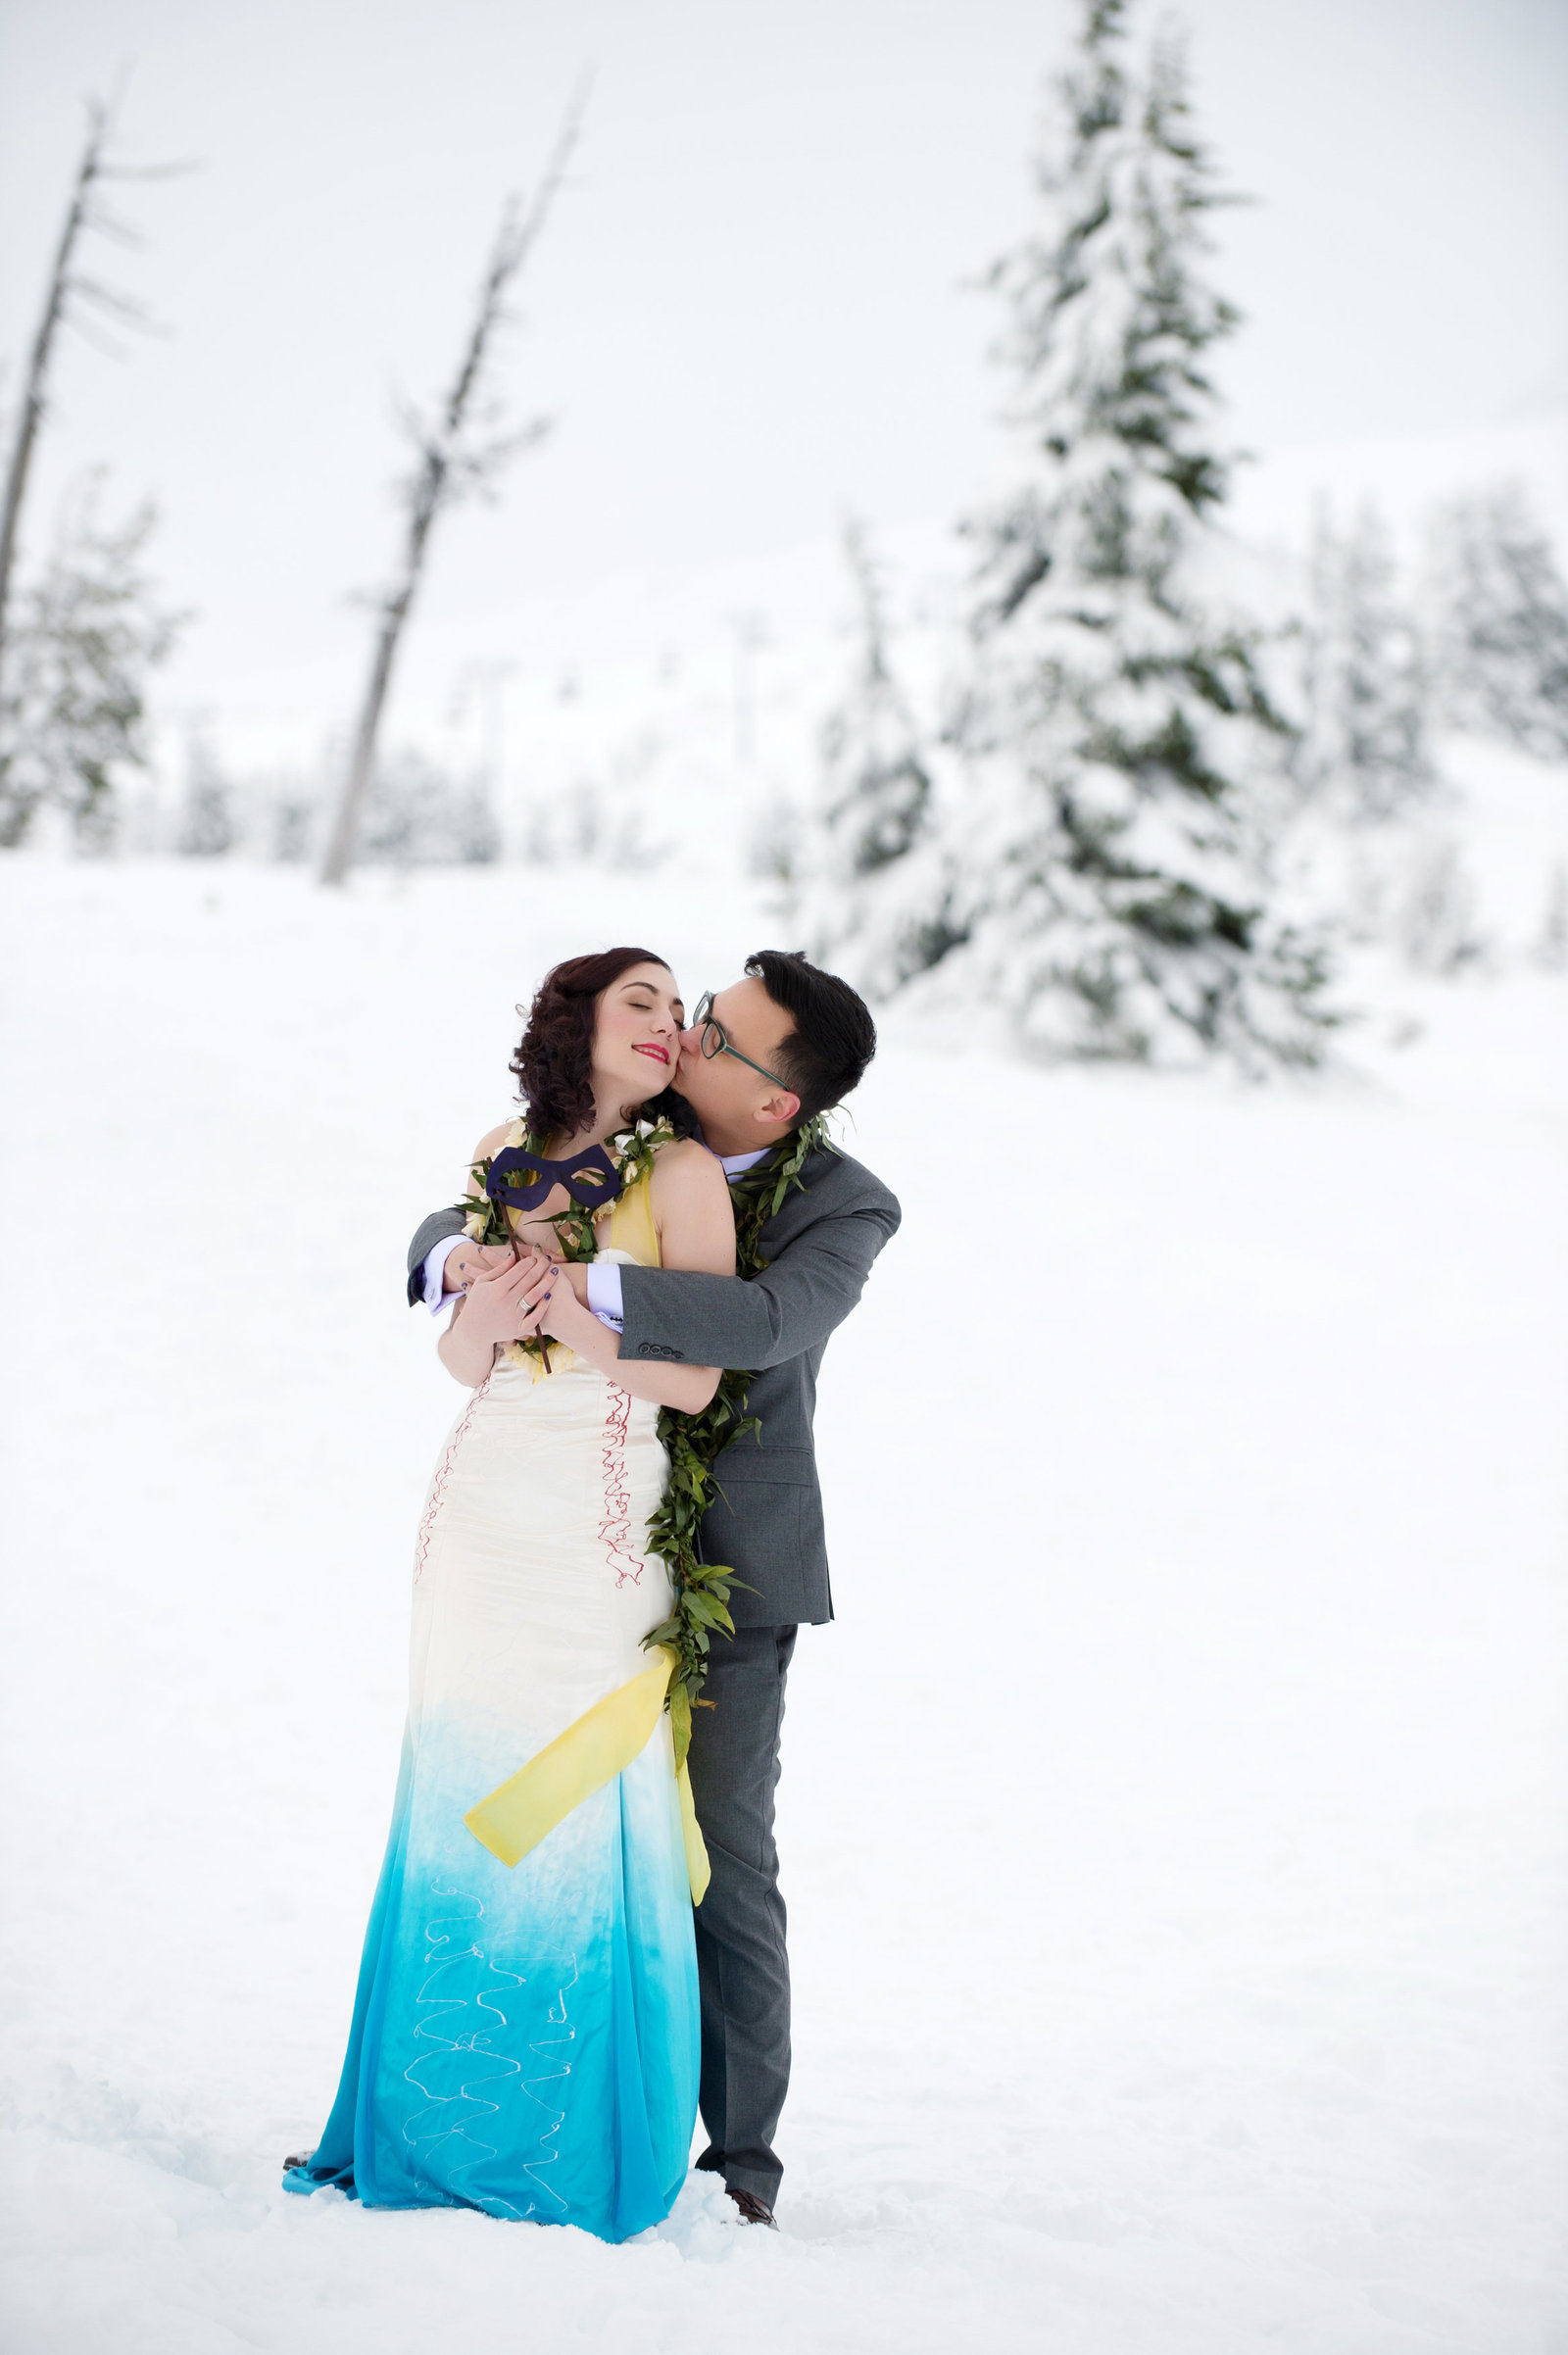 Crystal Genes Photography TIMBERLINE LODGE WEDDING161126-130255